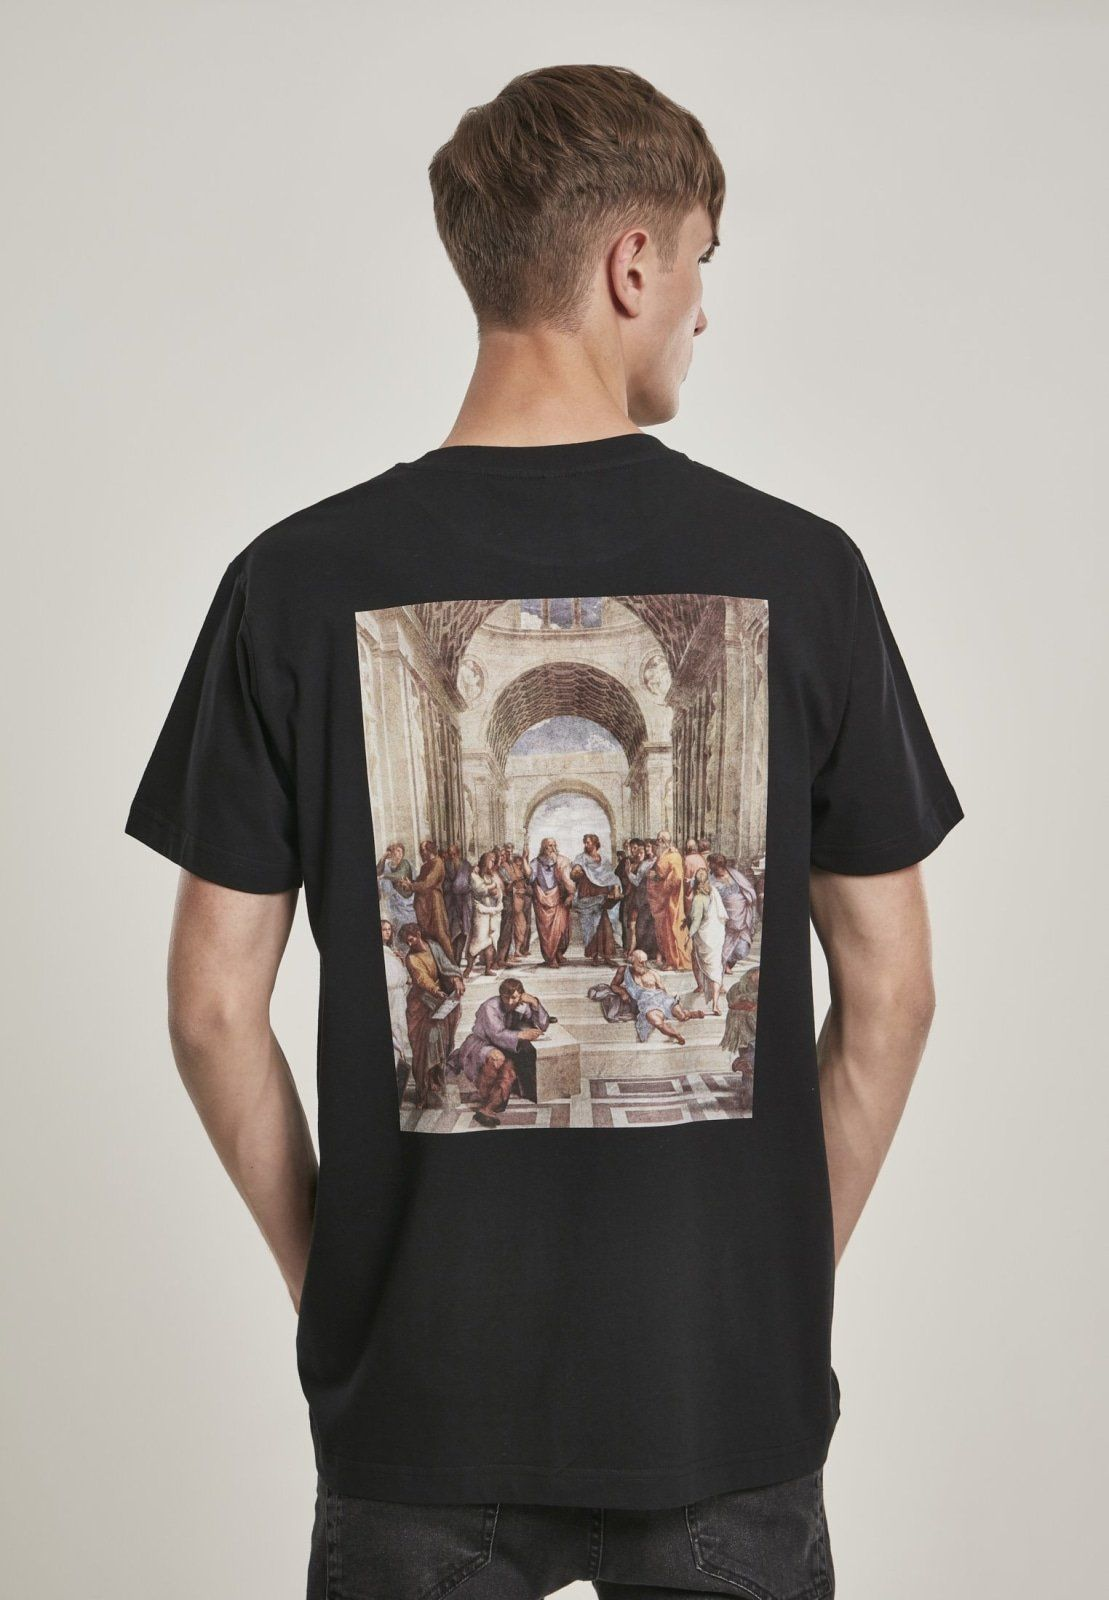 """Quite a funny shirt that combines the casual """"Crew Love Is True Love"""" slogan with a picture imprint of ancient Greek homies: the perfect tee to hang out with your best buddies or to stir up the city. And a guarantee for starting delightful conversations with strangers, since anyone who will take a look at this easy shirt will just have to smile. 100% Cotton"""